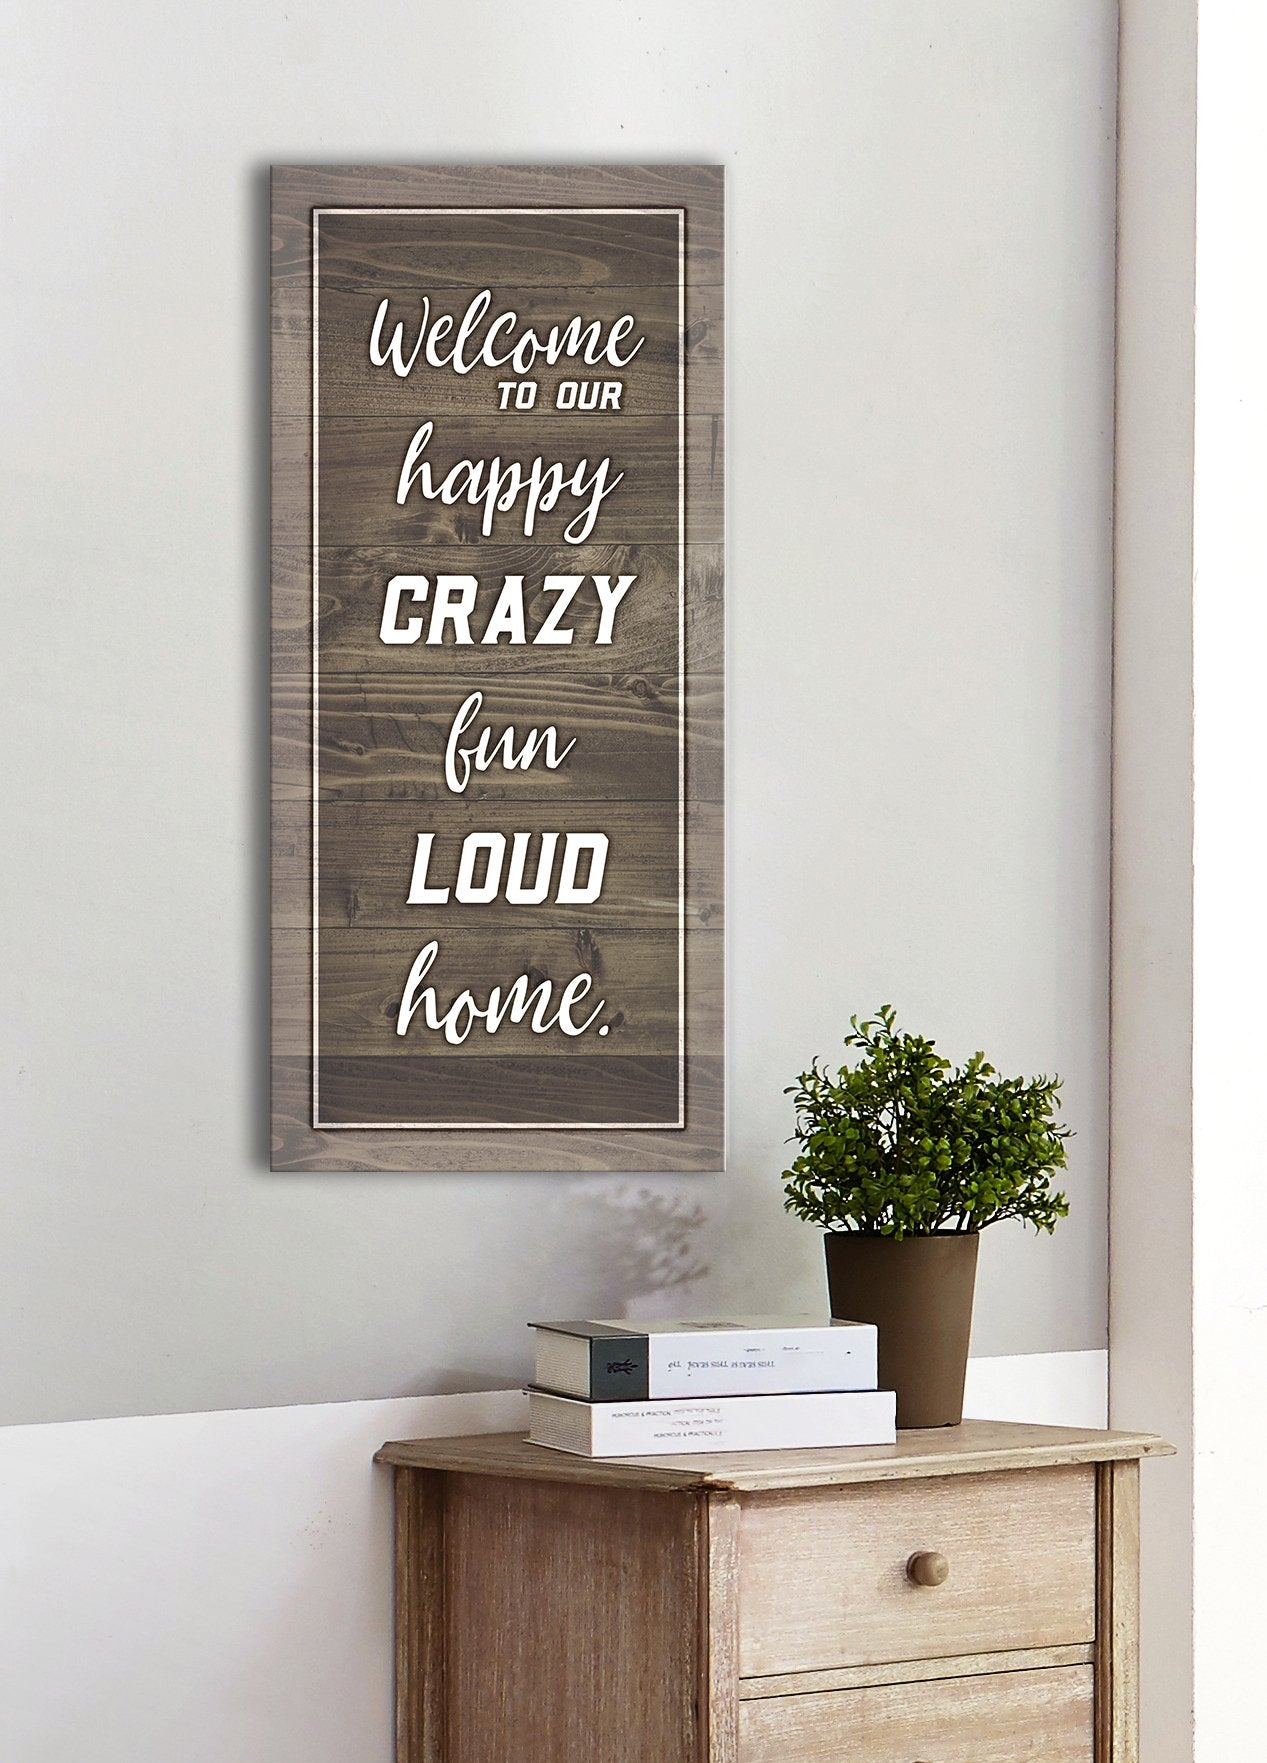 Home Decor Wall Art Welcome To Our Crazy Fun Loud Wood Frame Ready